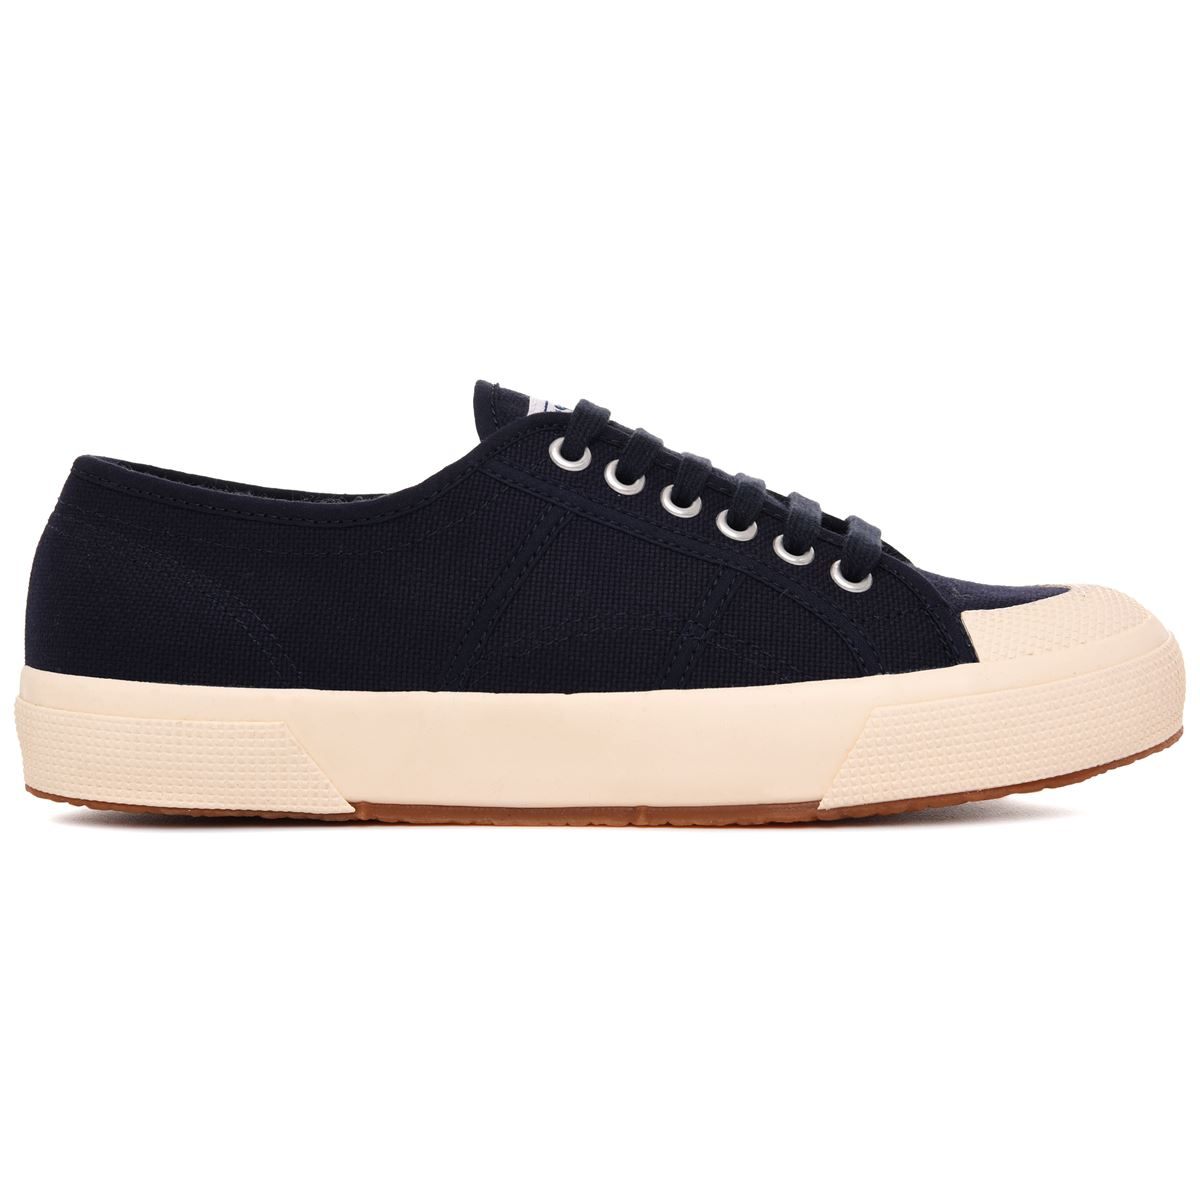 Italian Le Superga Superga for men and women-S00DP10